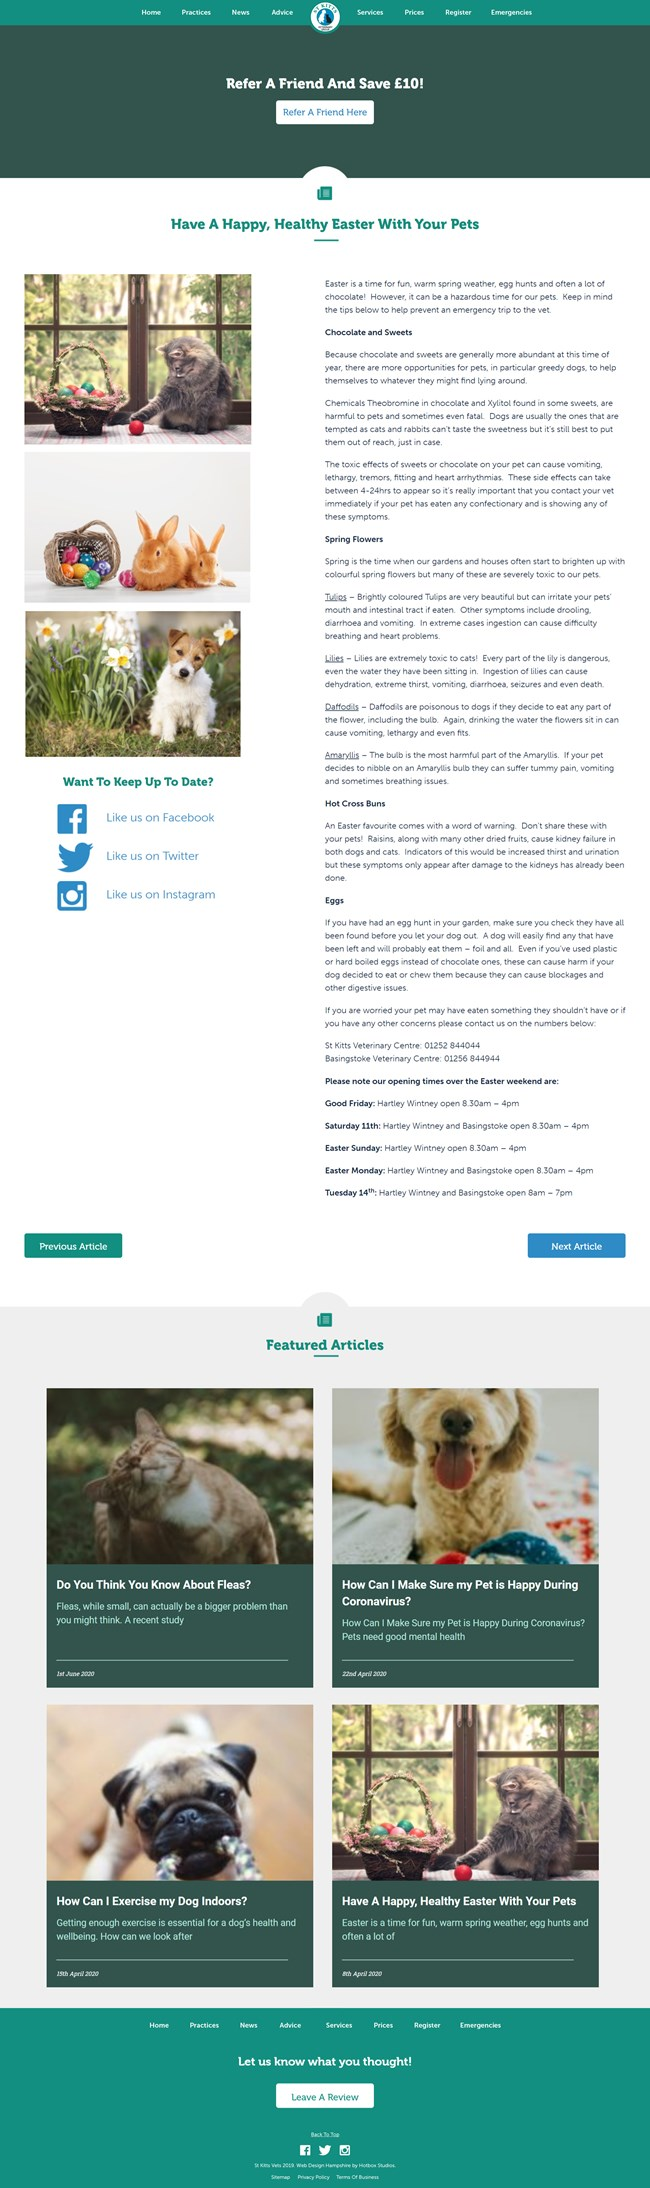 St Kitts Vet Website Design and WordPress Web Development SP009 News Article